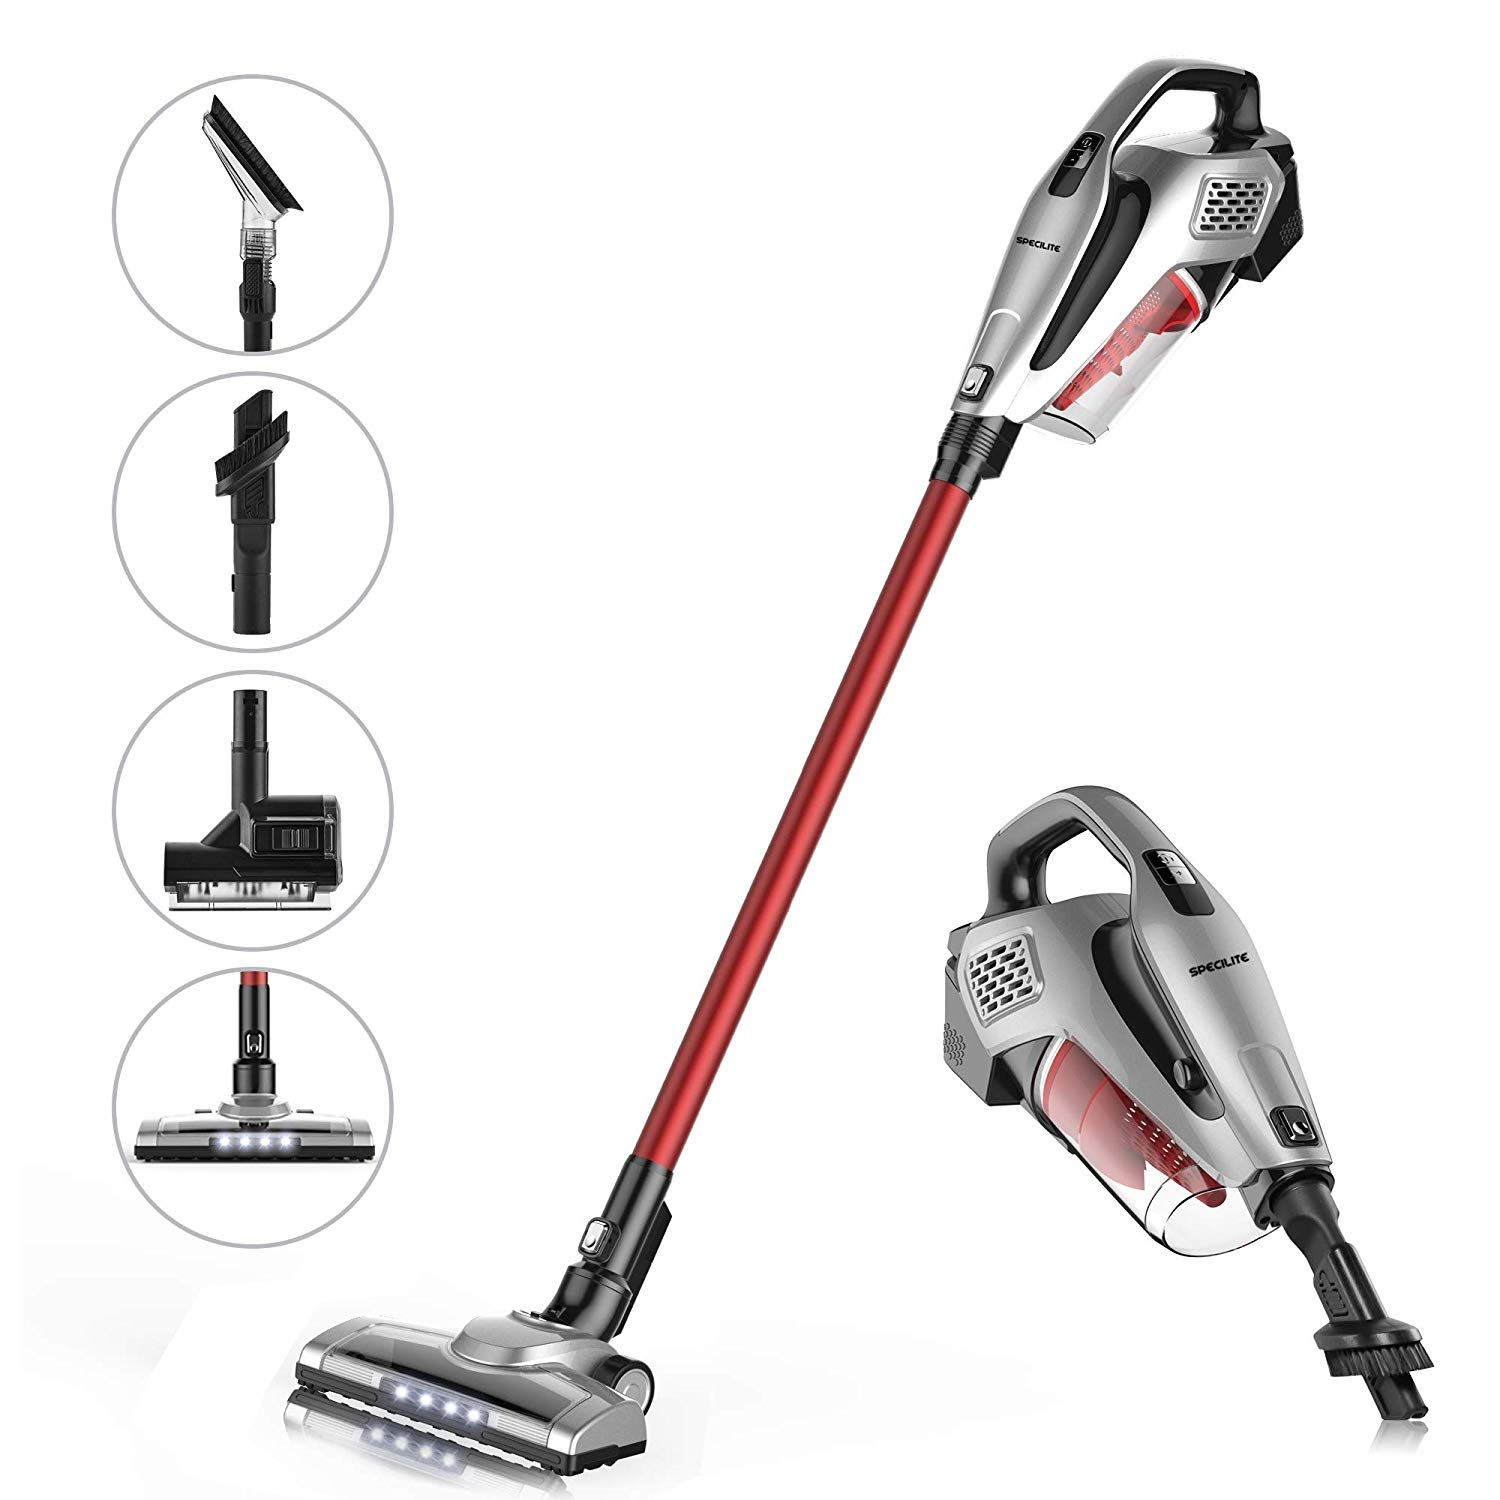 2 In 1 Cordless Vacuum Multiple Functions Make The Vacuum